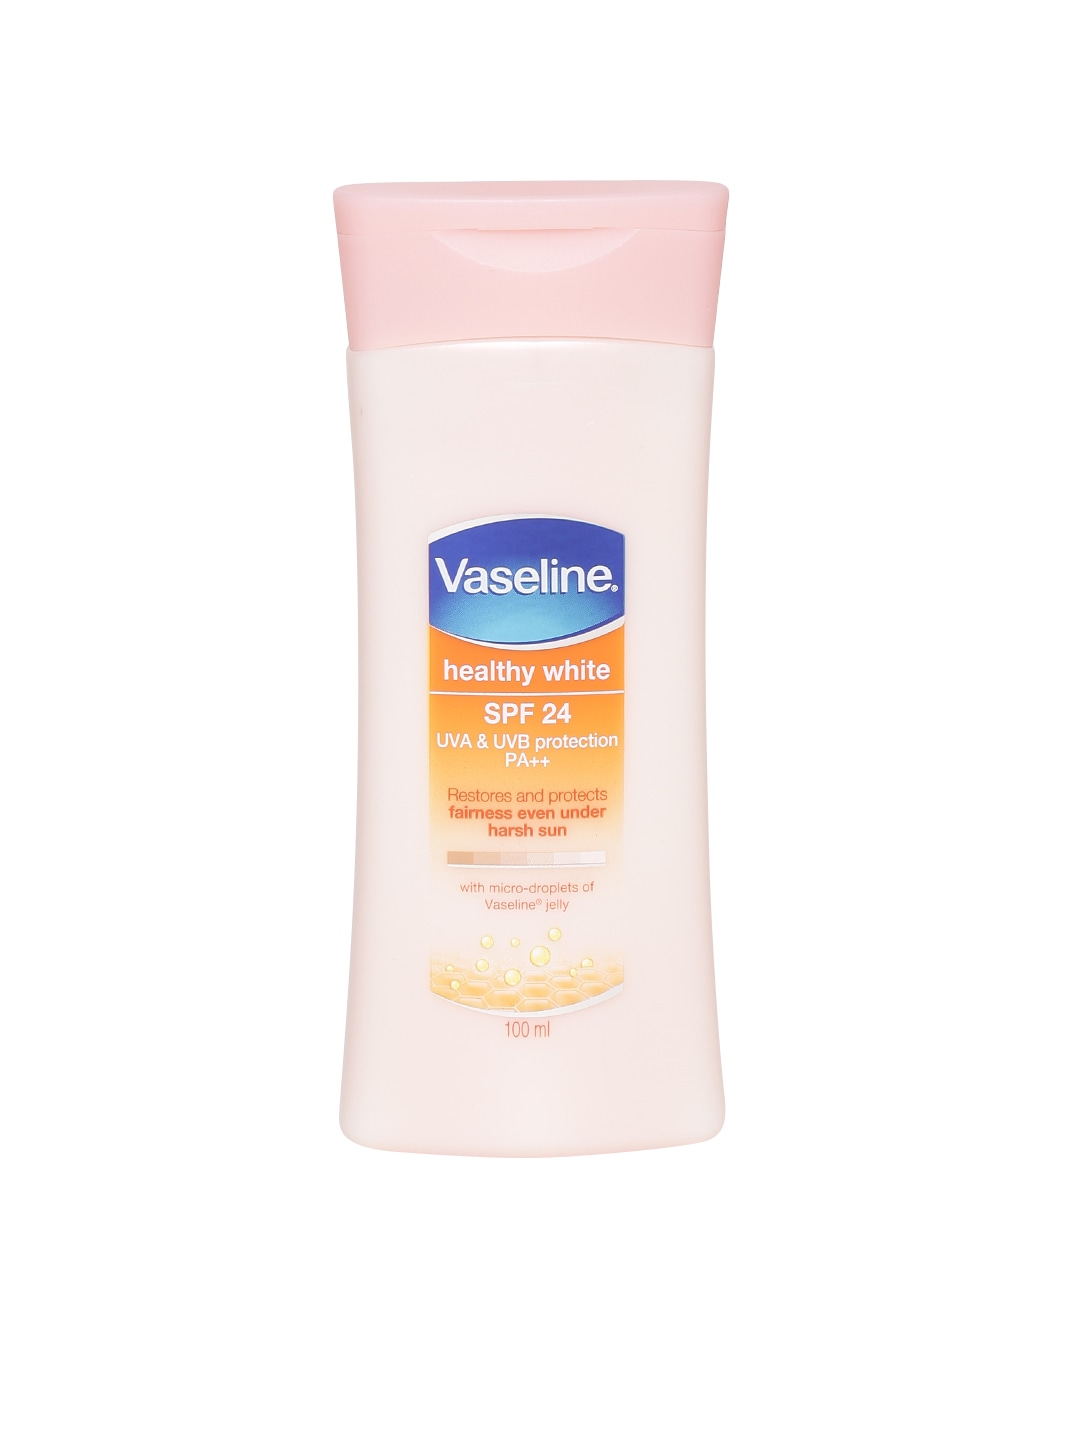 Vaseline Healthy White Body Lotion 100 ml with SPF 24 image